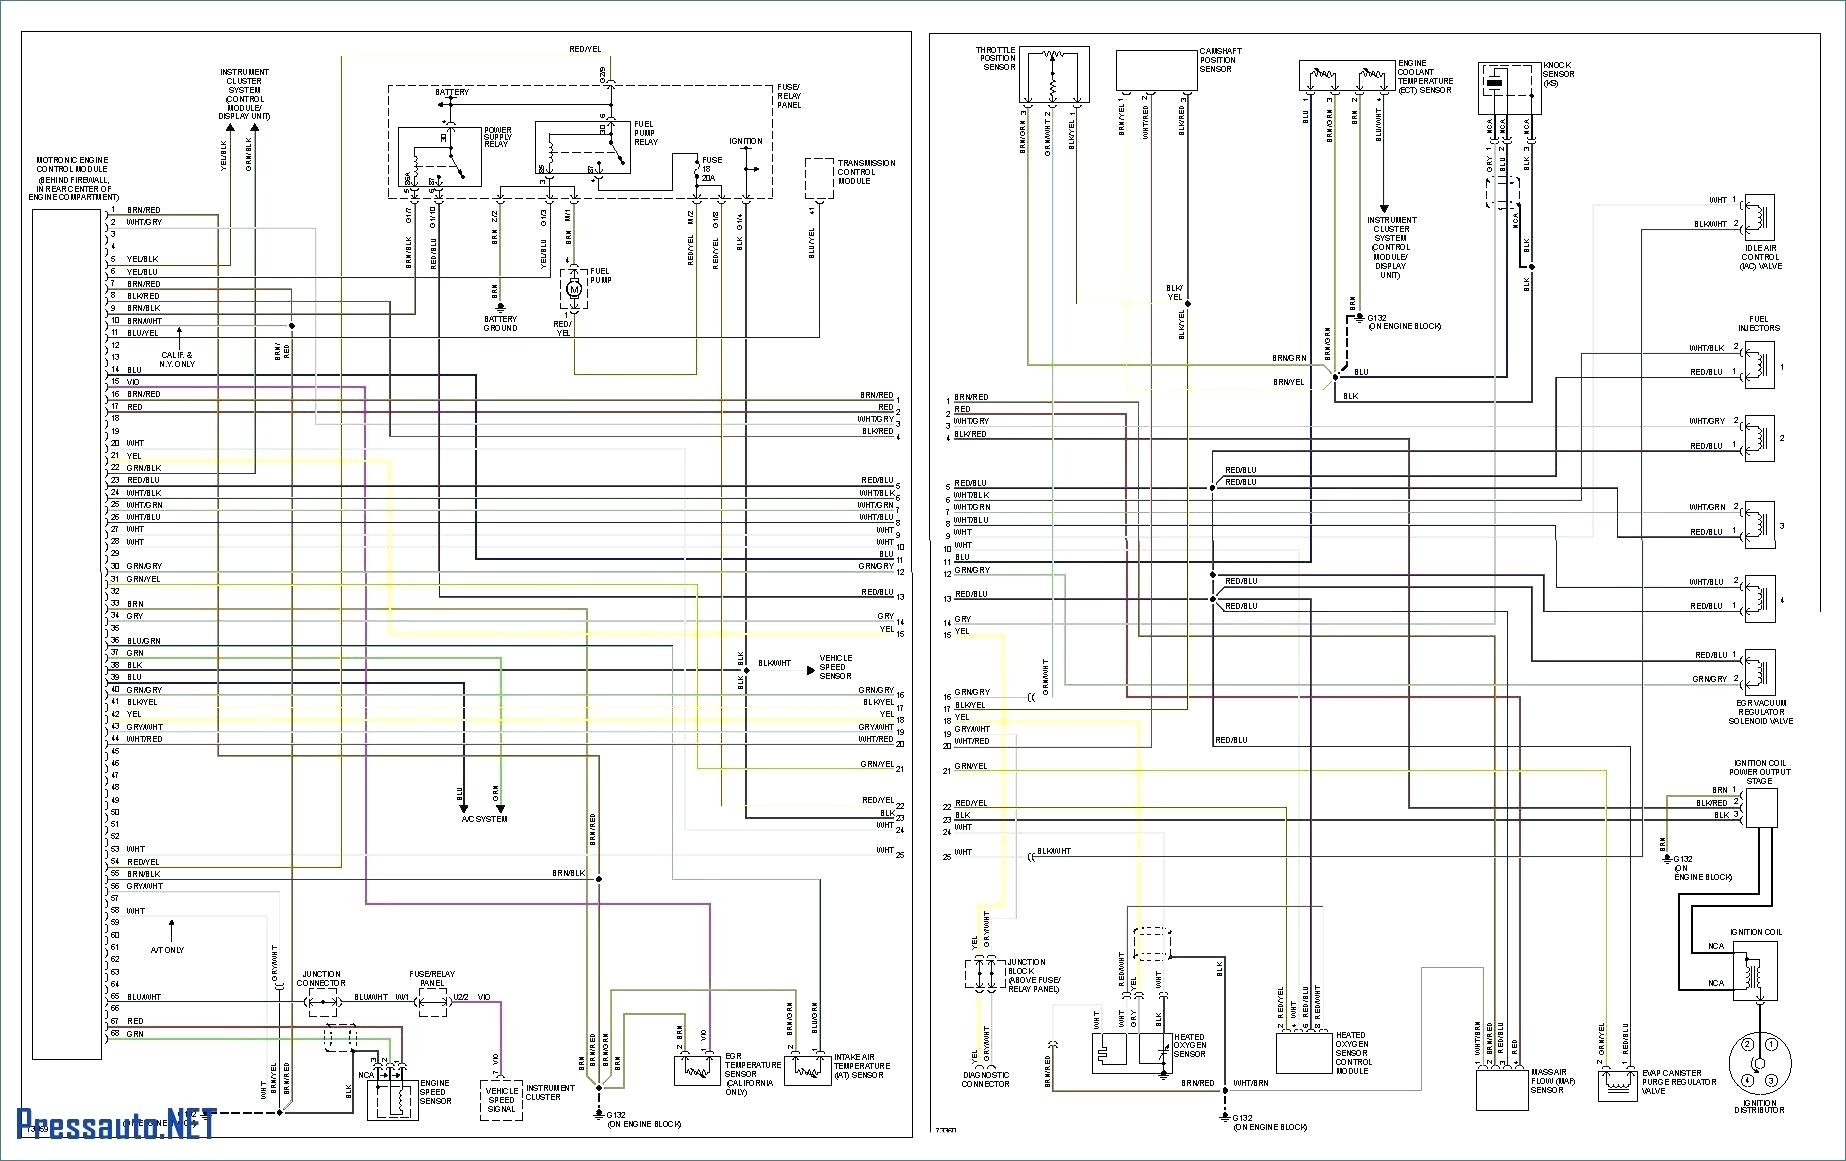 2003 Vw Wiring Diagram - Wiring Diagram 500 Vw Pat Radio Wiring Harness on vw radio removal tool, vw bus wiring harness, vw turn signal wiring harness,